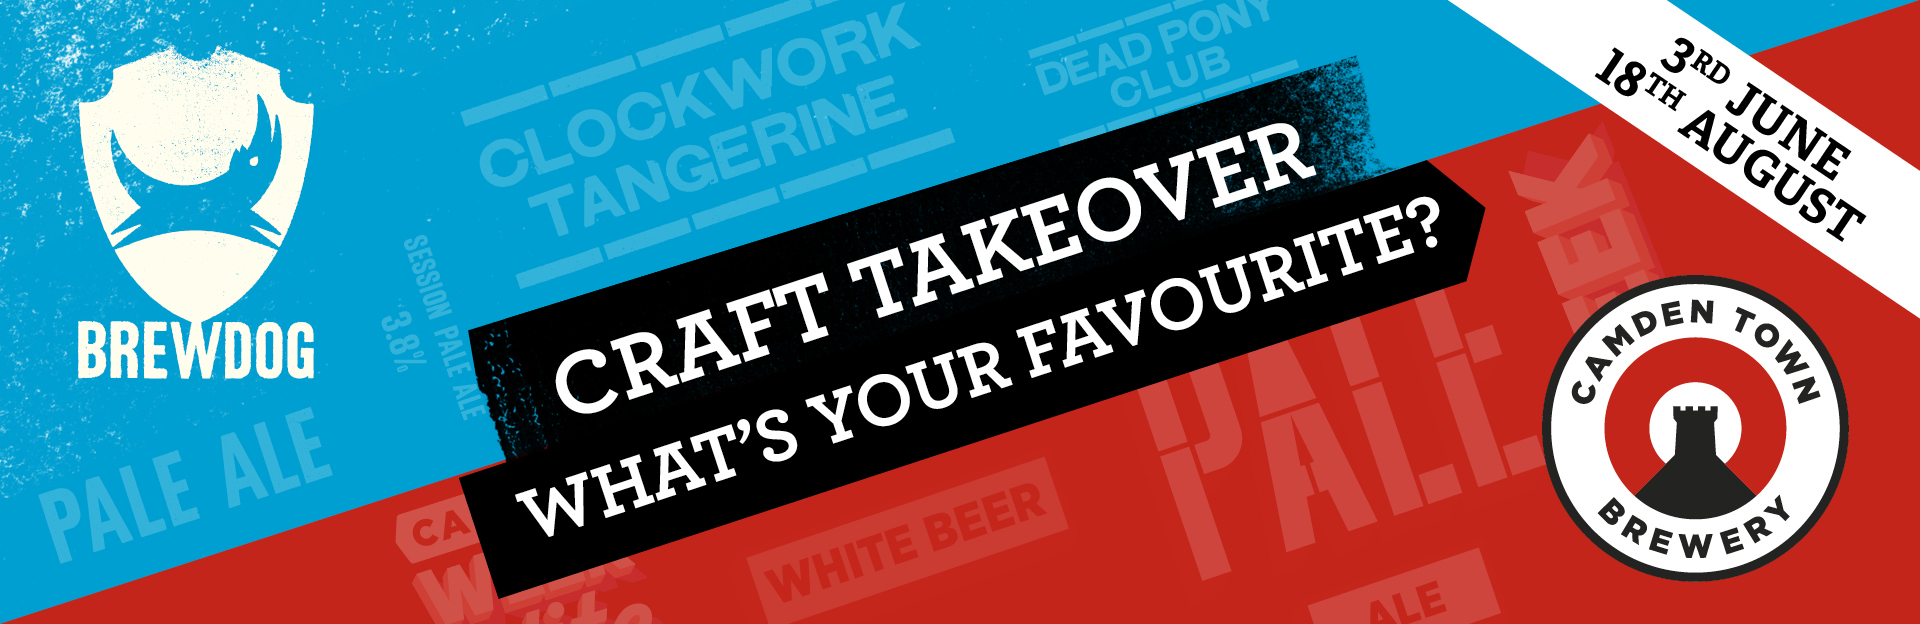 Craft Takeover at The Crown Hotel